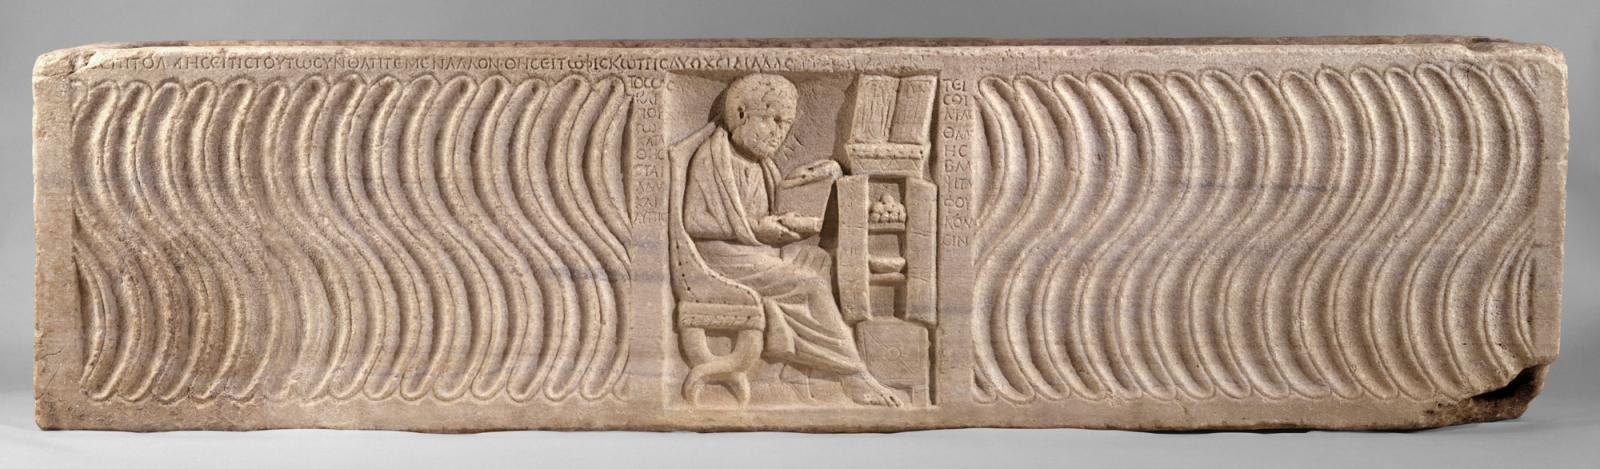 Sarcophagus of a Greek physician reading a scroll from his personal library. 4th c. CE. Marble. Metropolitan Museum of Art, 48.76.1. Licensed under CC BY 1.0.